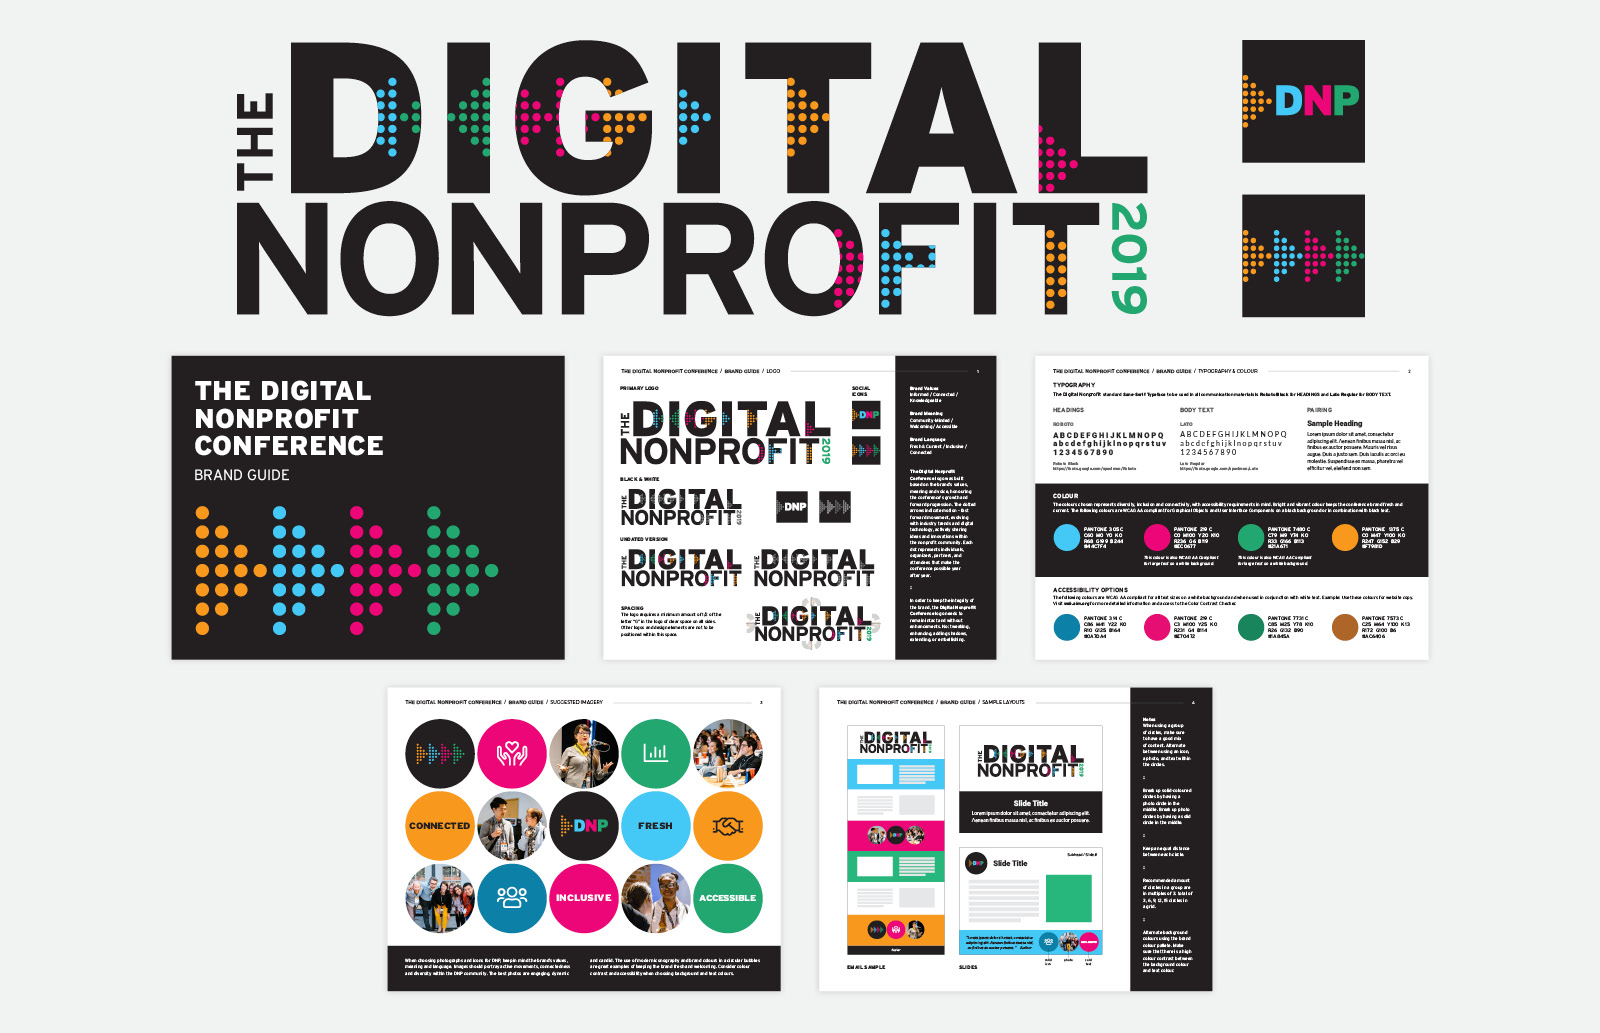 The Digital Nonprofit Conference 2019 Event Branding